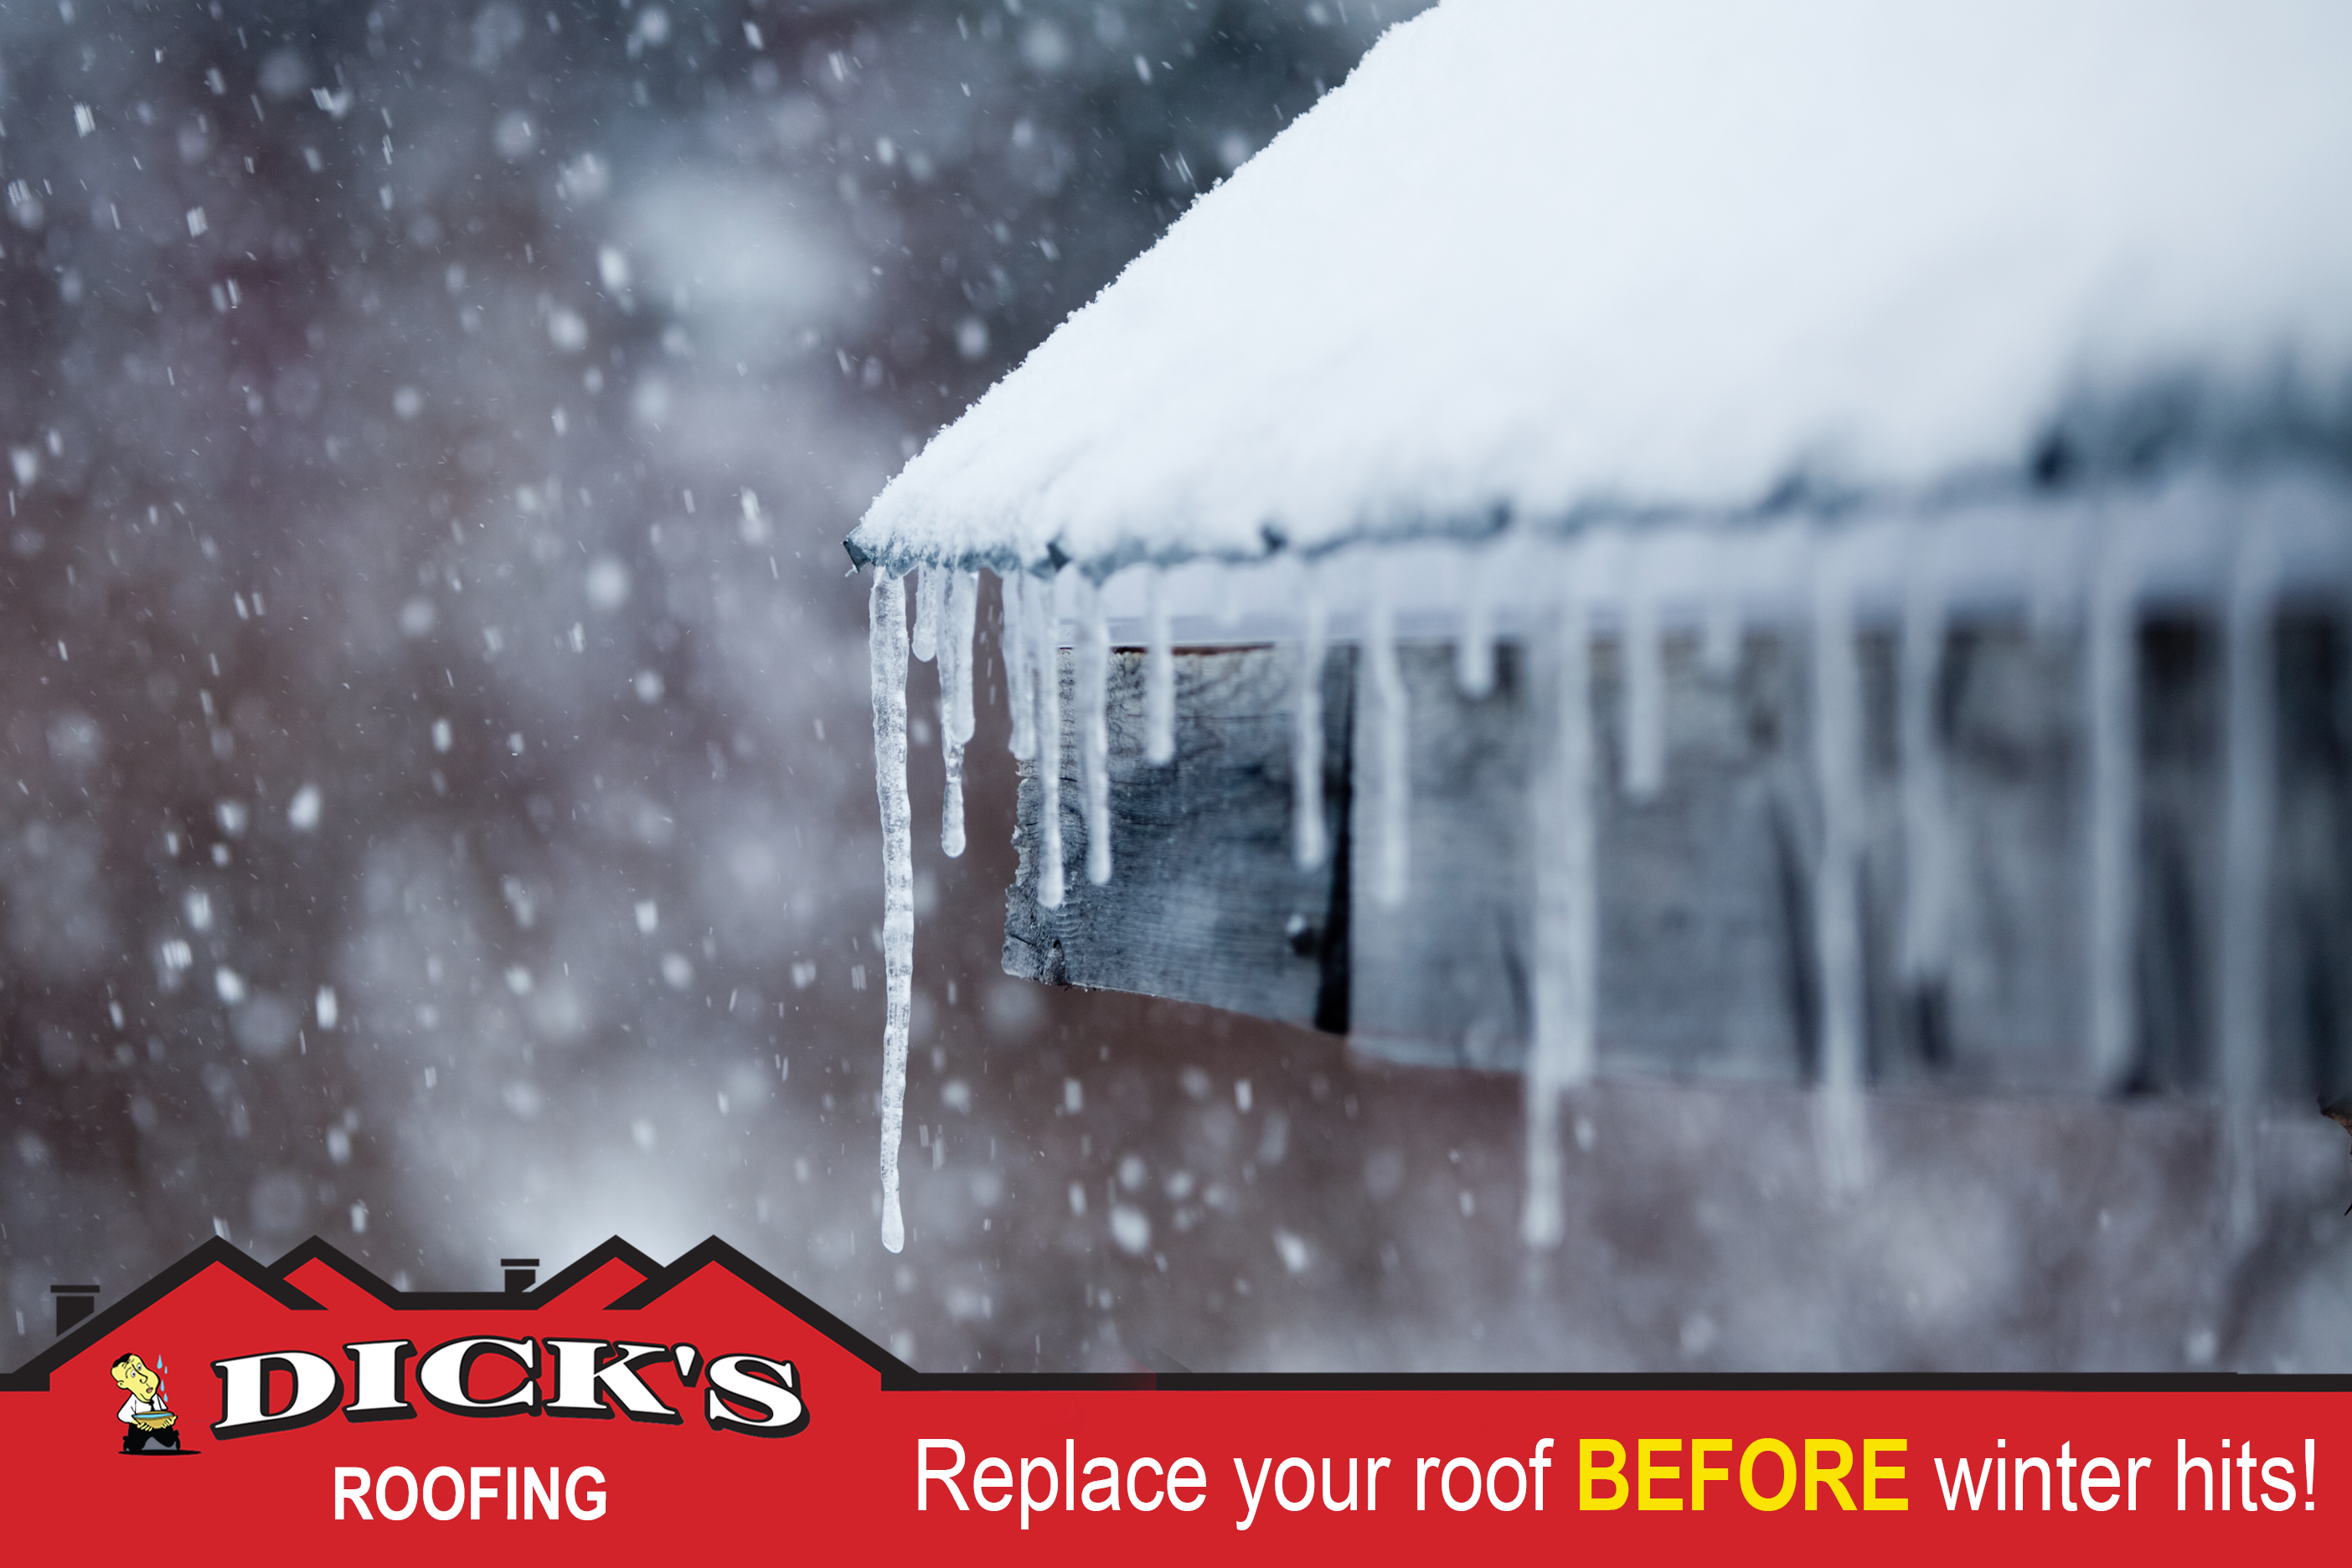 Replace Your Roof Before Winter | Dick's Roofing